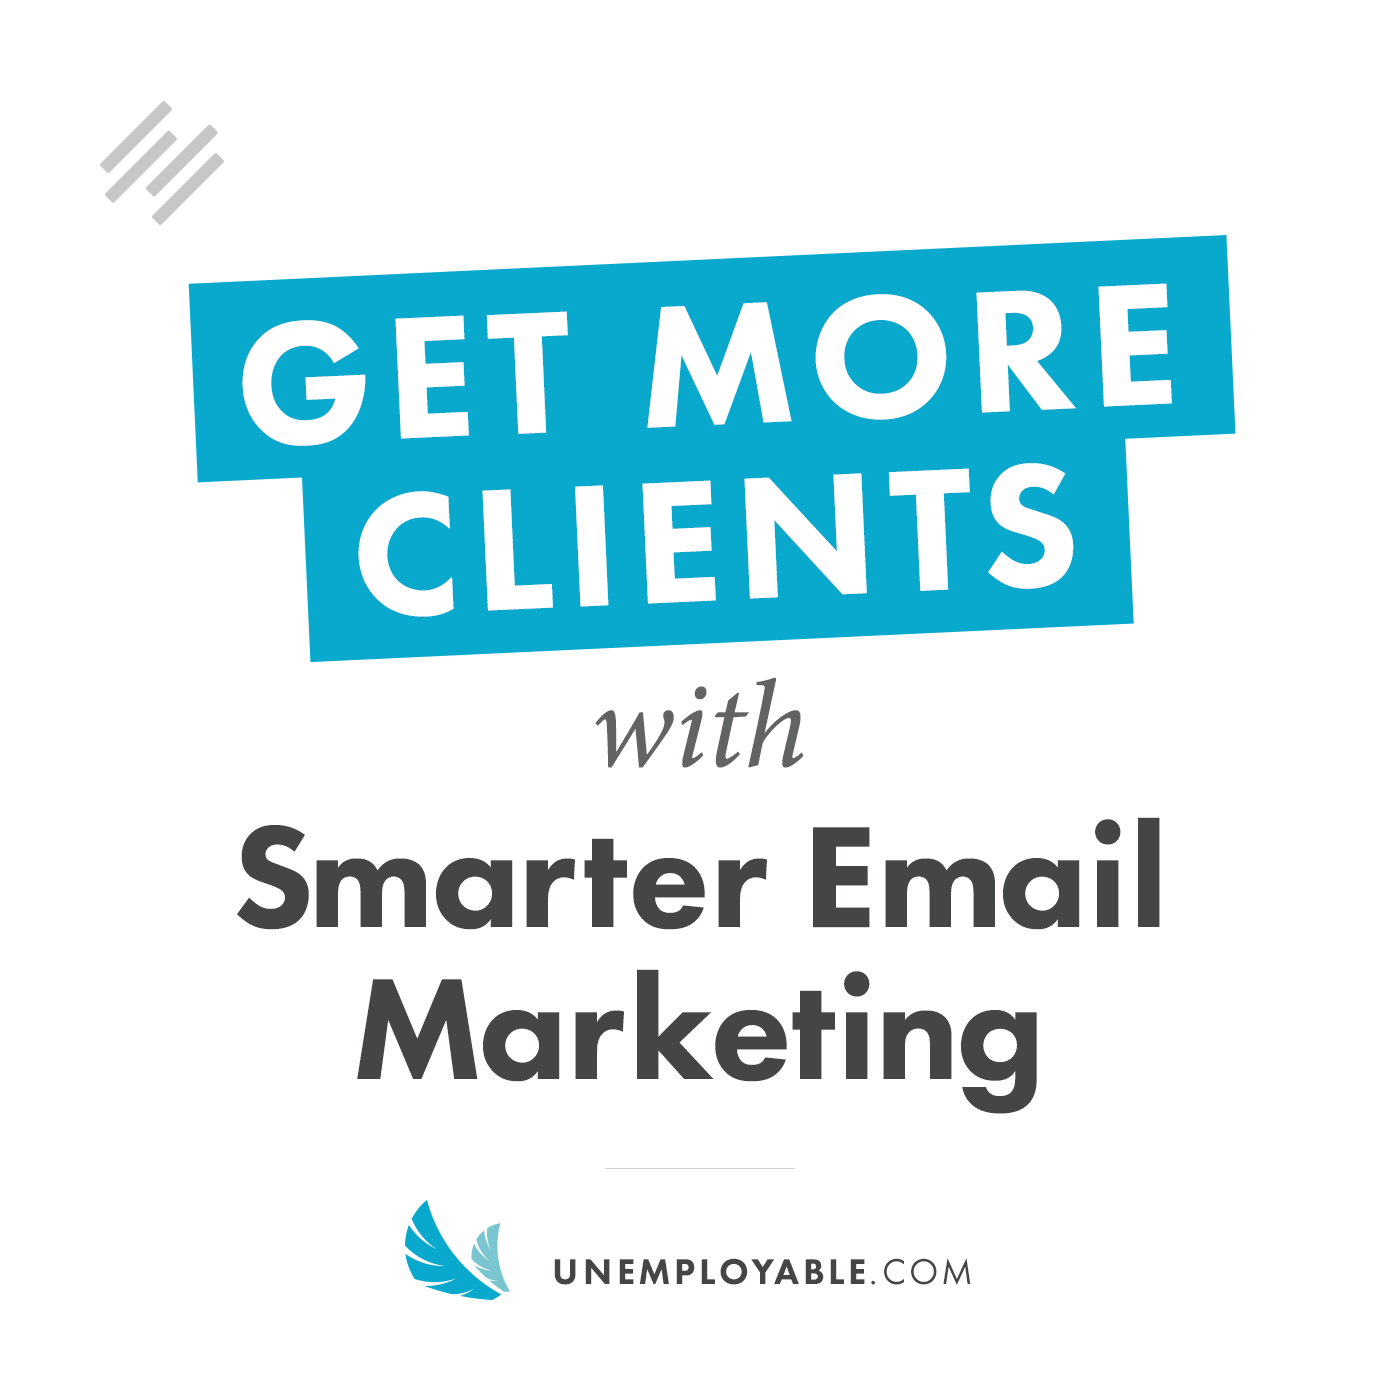 Lesson 9: Five Copywriting Tips for Email Marketing